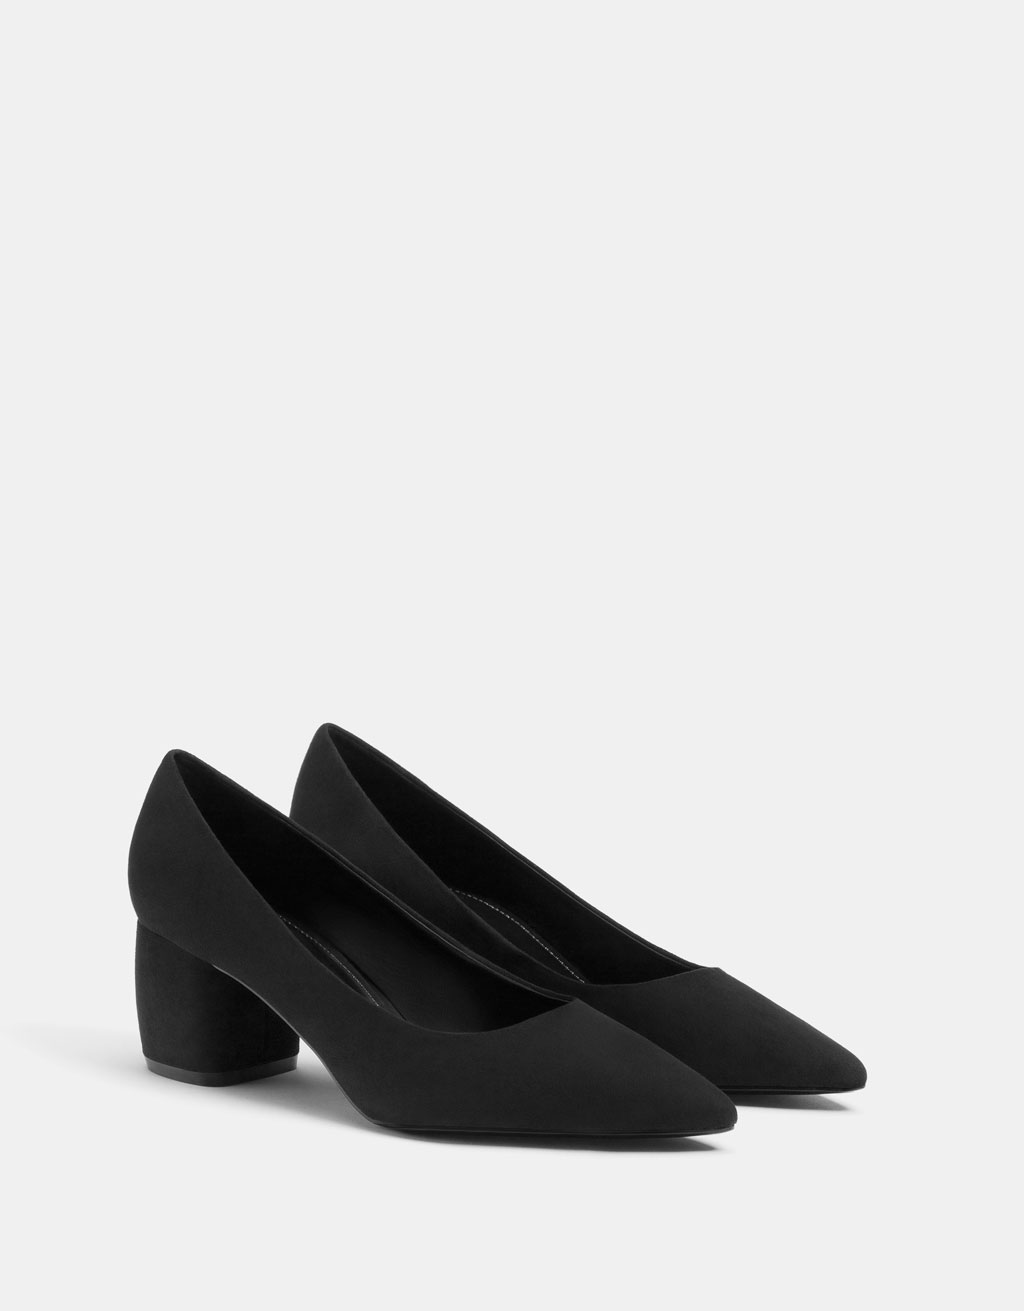 Mid-heel shoes with pointed toe